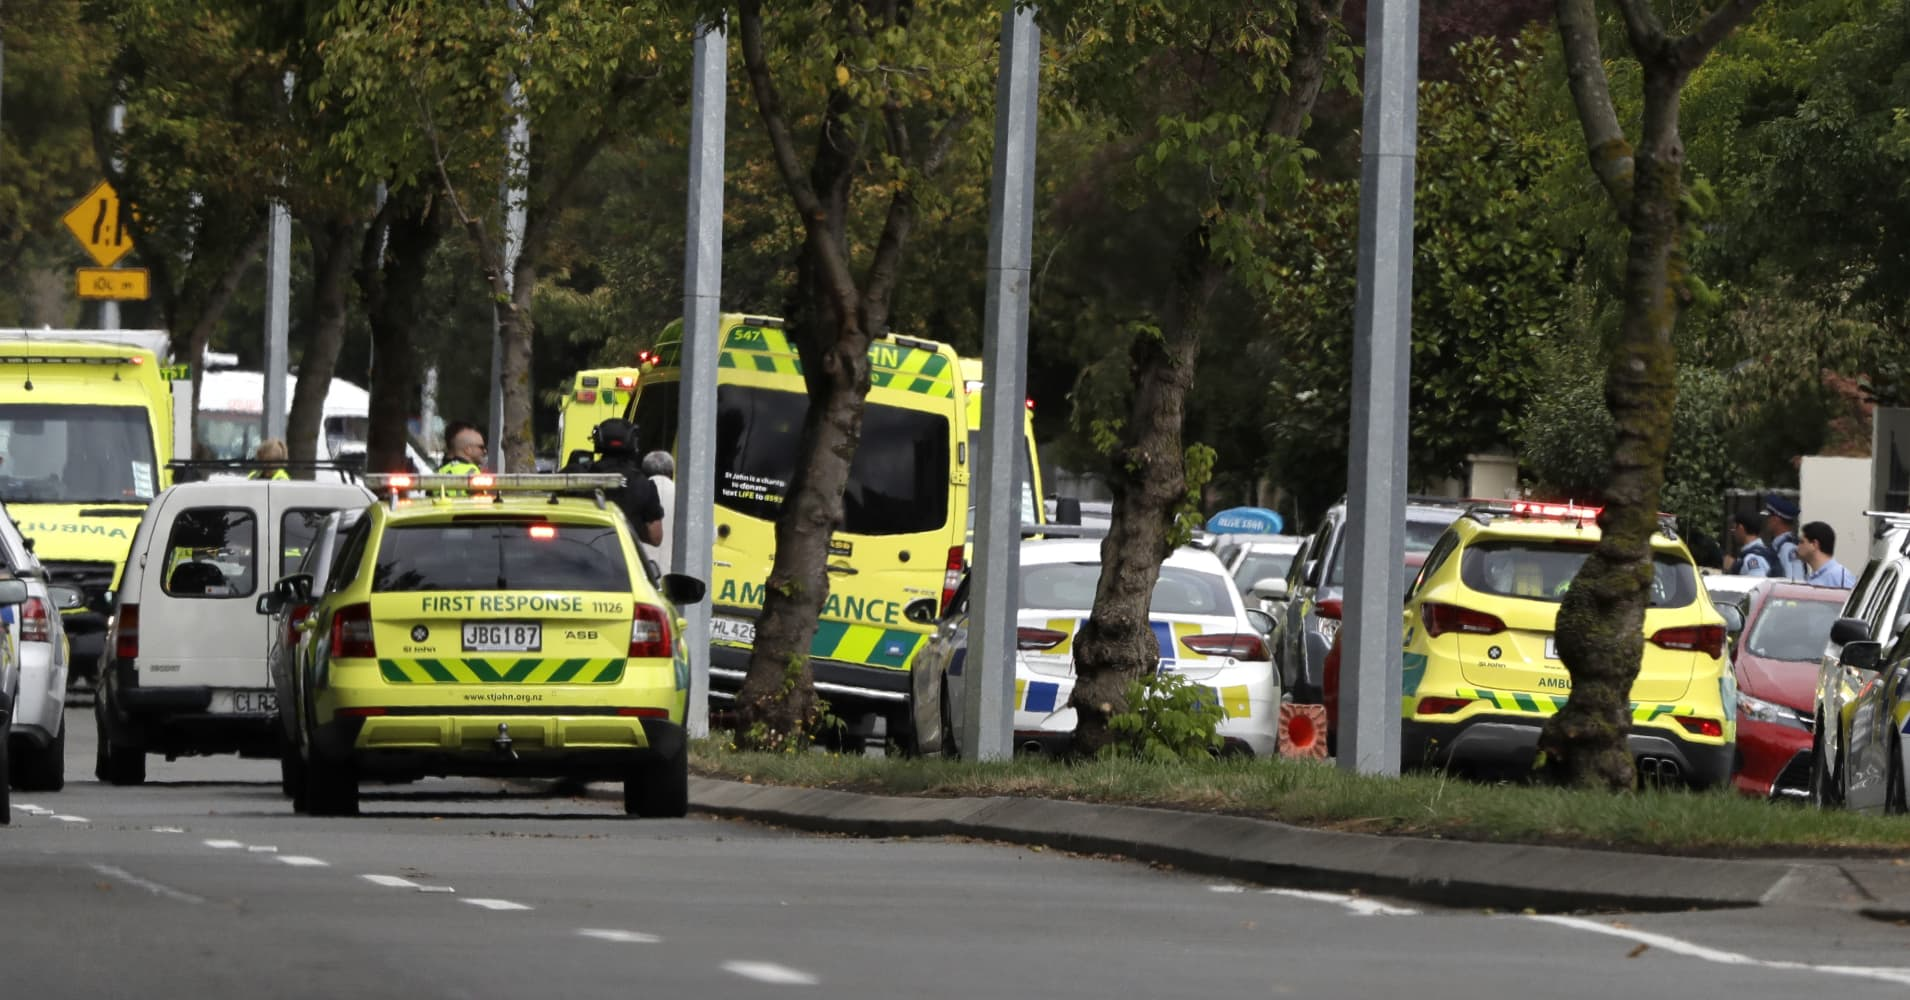 40 people killed in shootings at New Zealand mosques, prime minister says